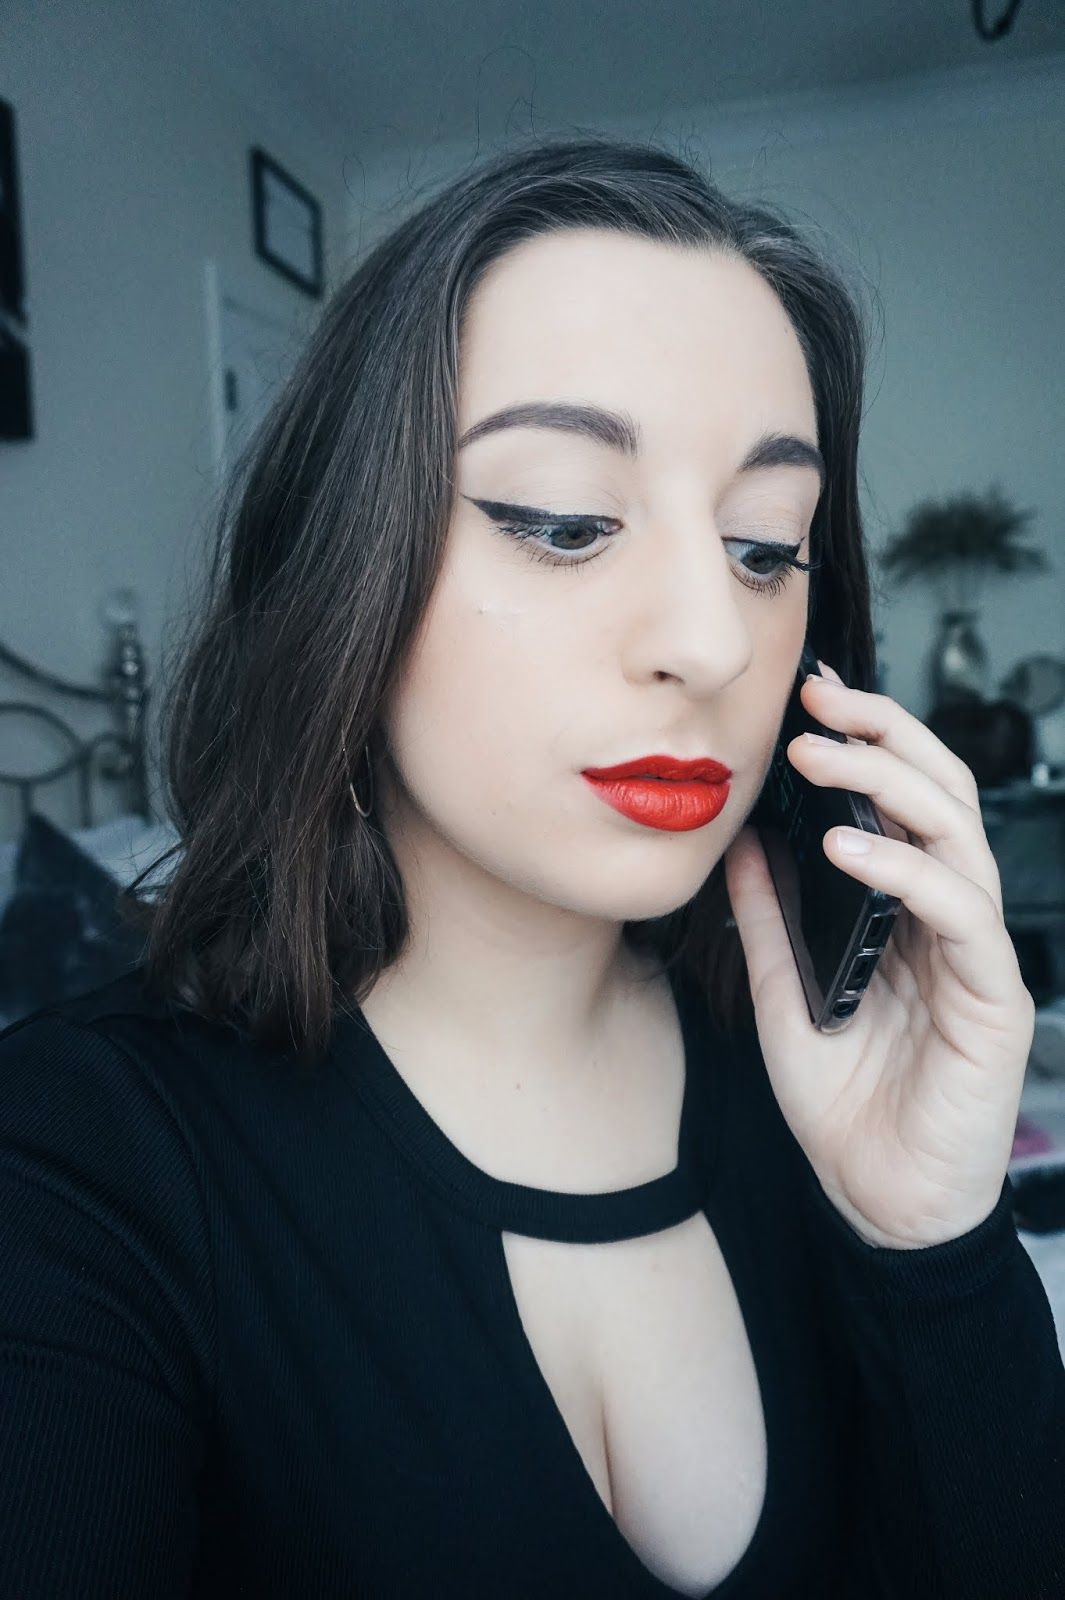 Classic Date Night Combo The Red Lip Date Night Makeup Night